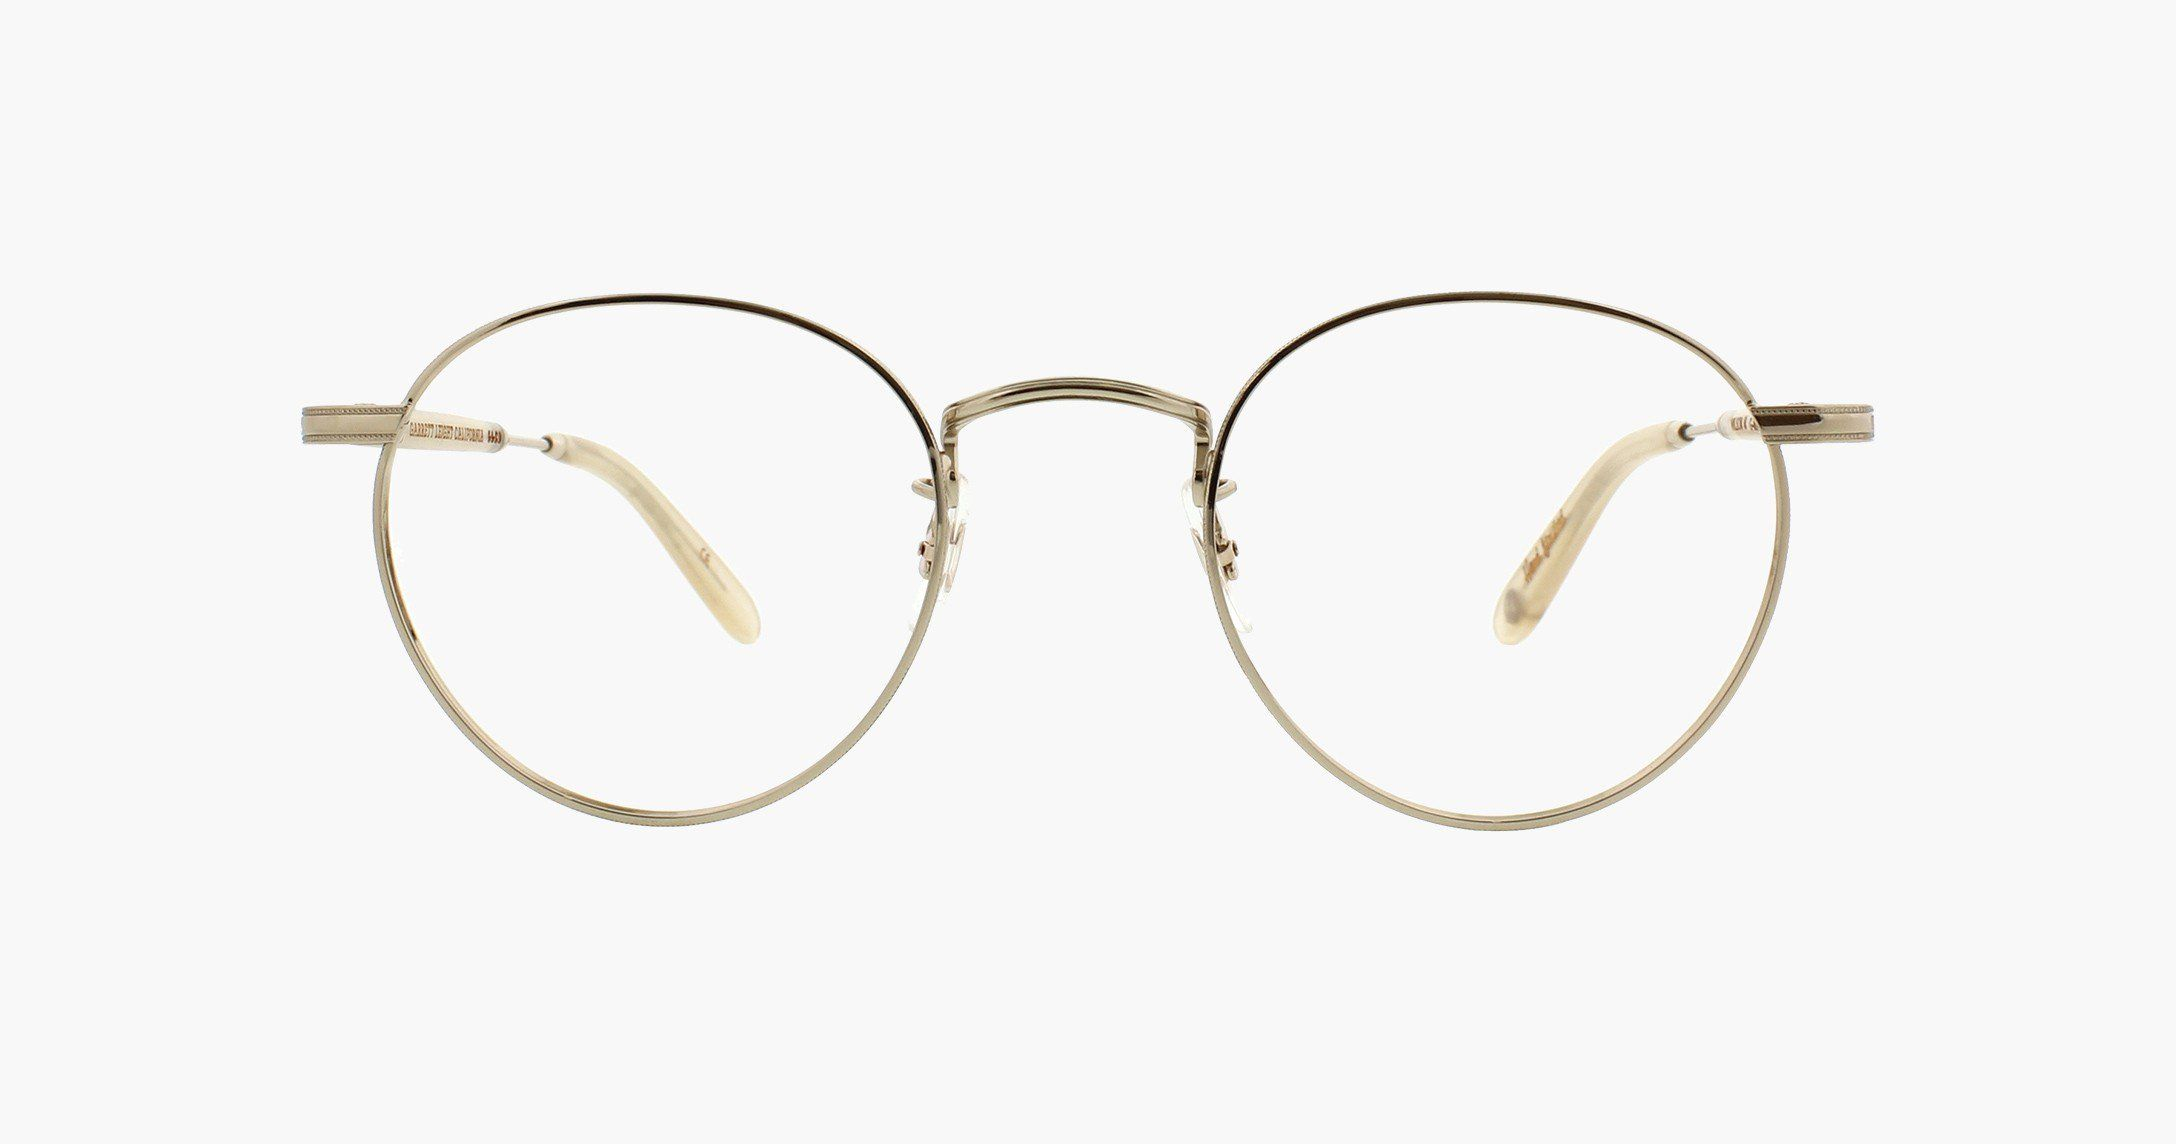 The Wilson M Round Frames Are Stripped Down Metal Frames In Silver